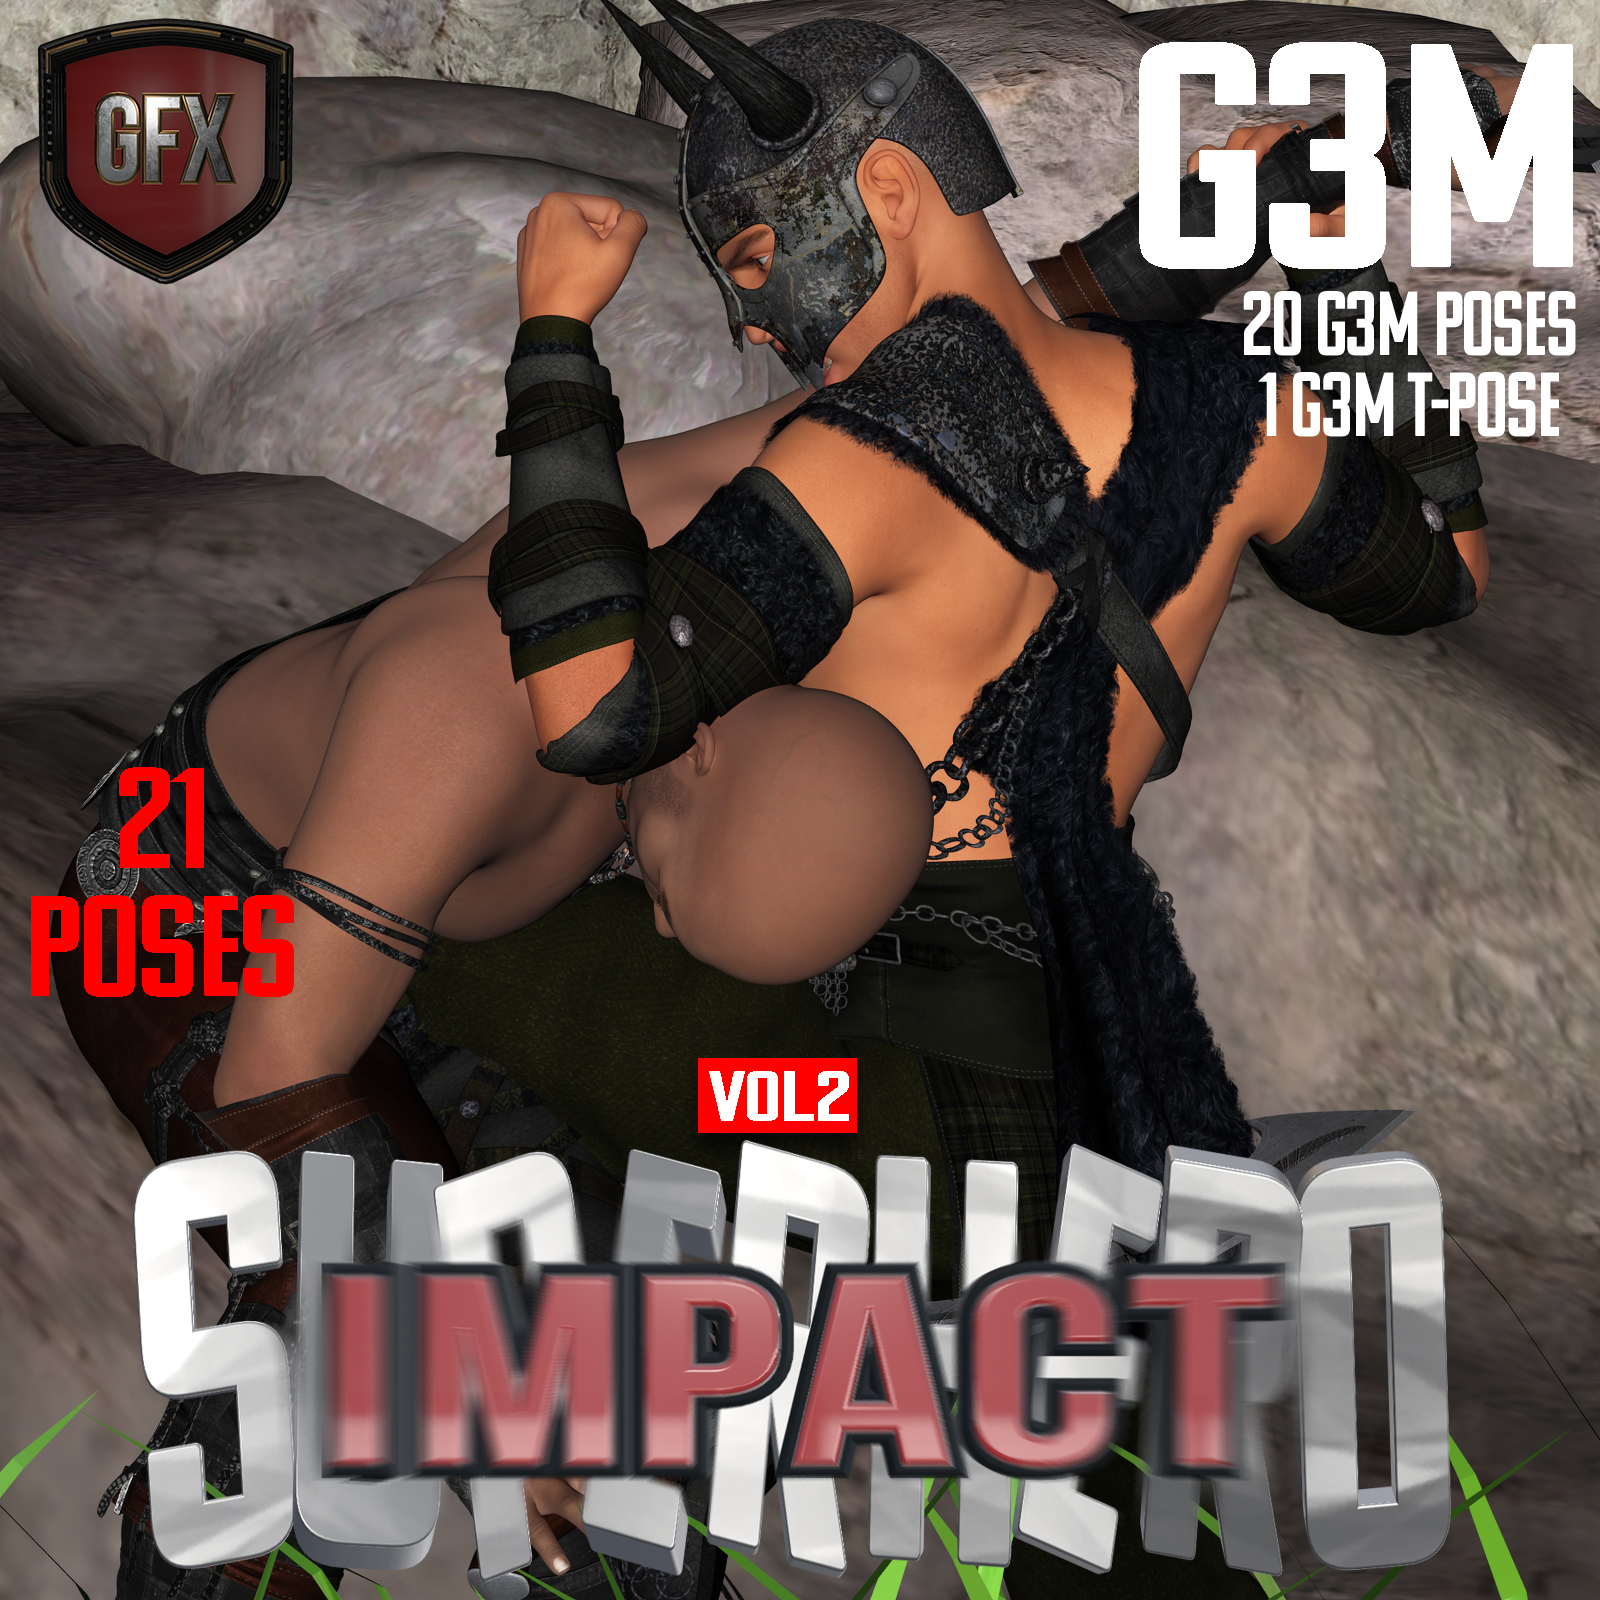 SuperHero Impact for G3M Volume 2